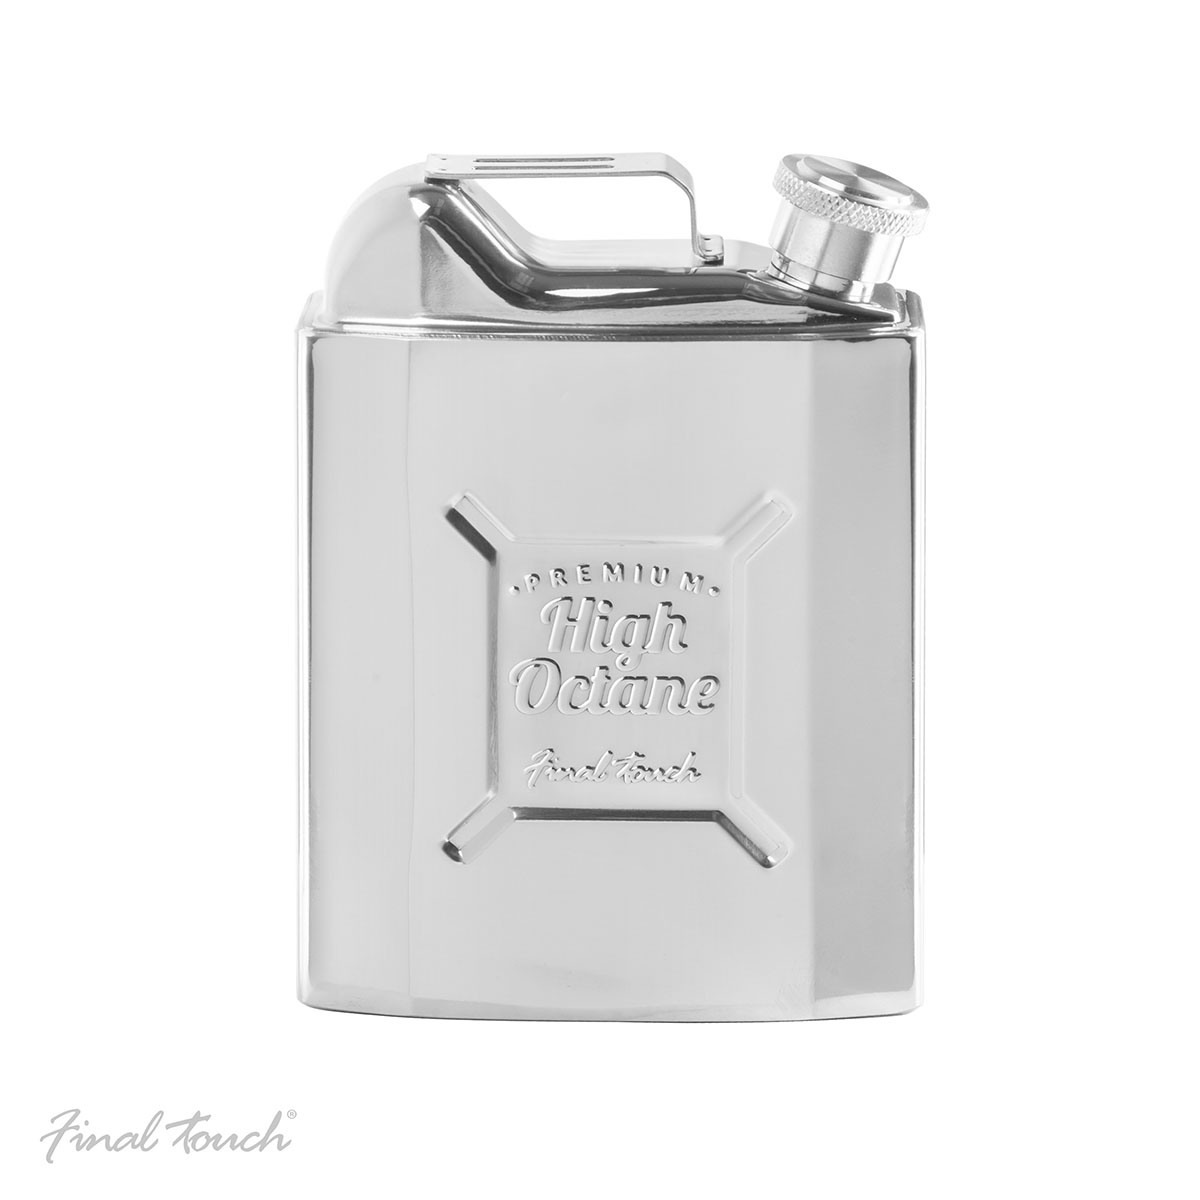 Stainless steel gas can 20 litre petrol container